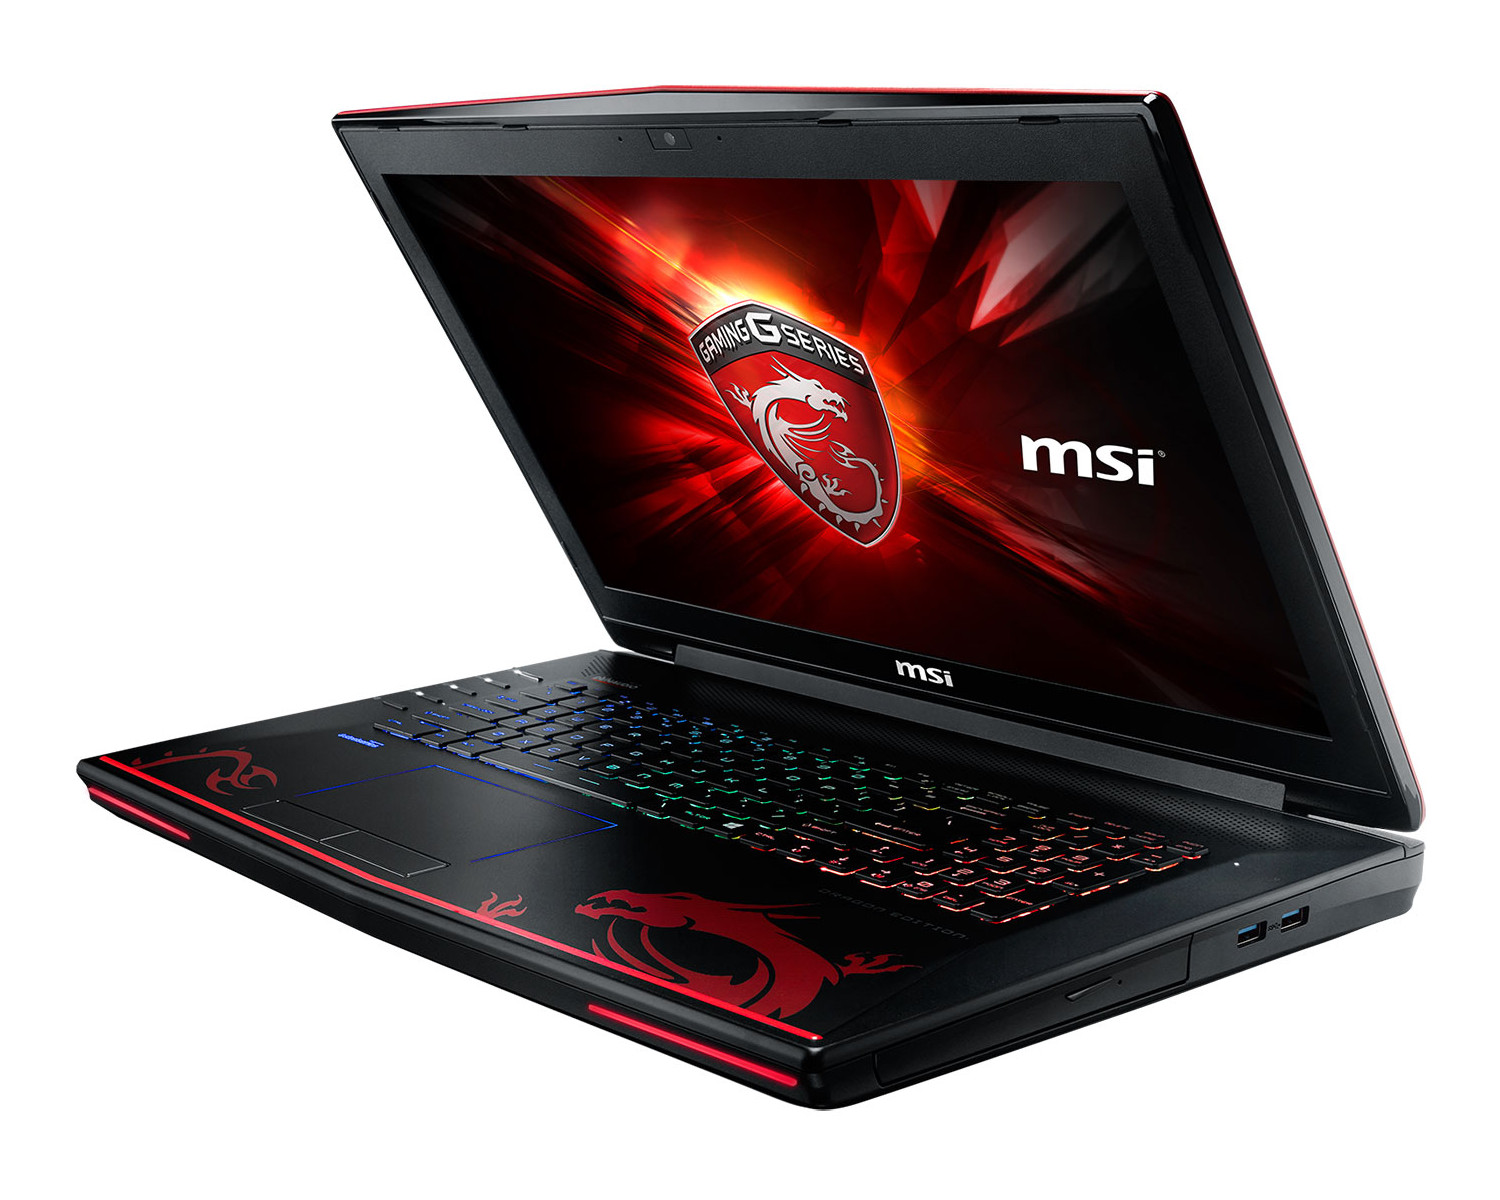 msi gt72s 6qf 066fr dominator pro g dragon 4k edition. Black Bedroom Furniture Sets. Home Design Ideas